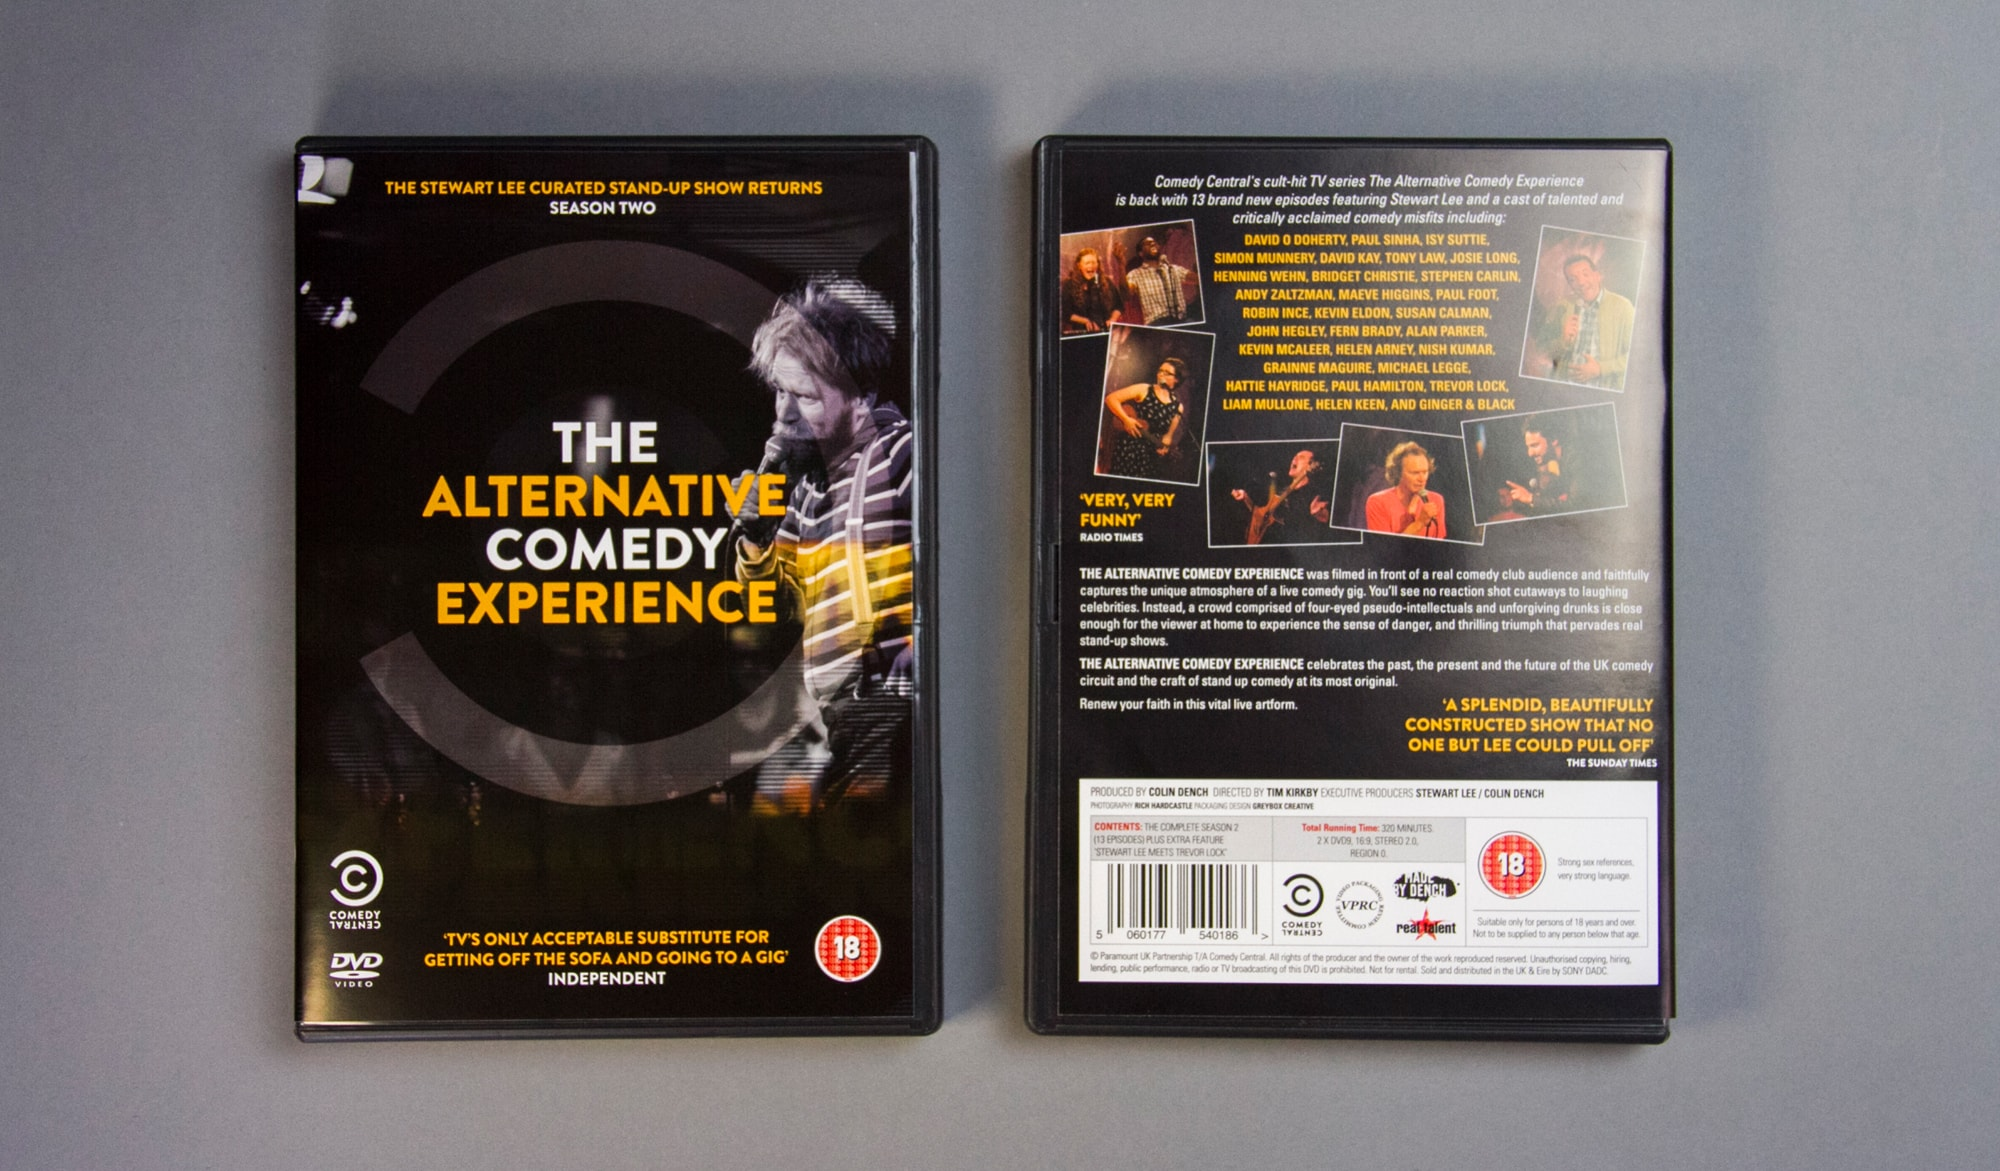 ACE Series 2 DVD front and back